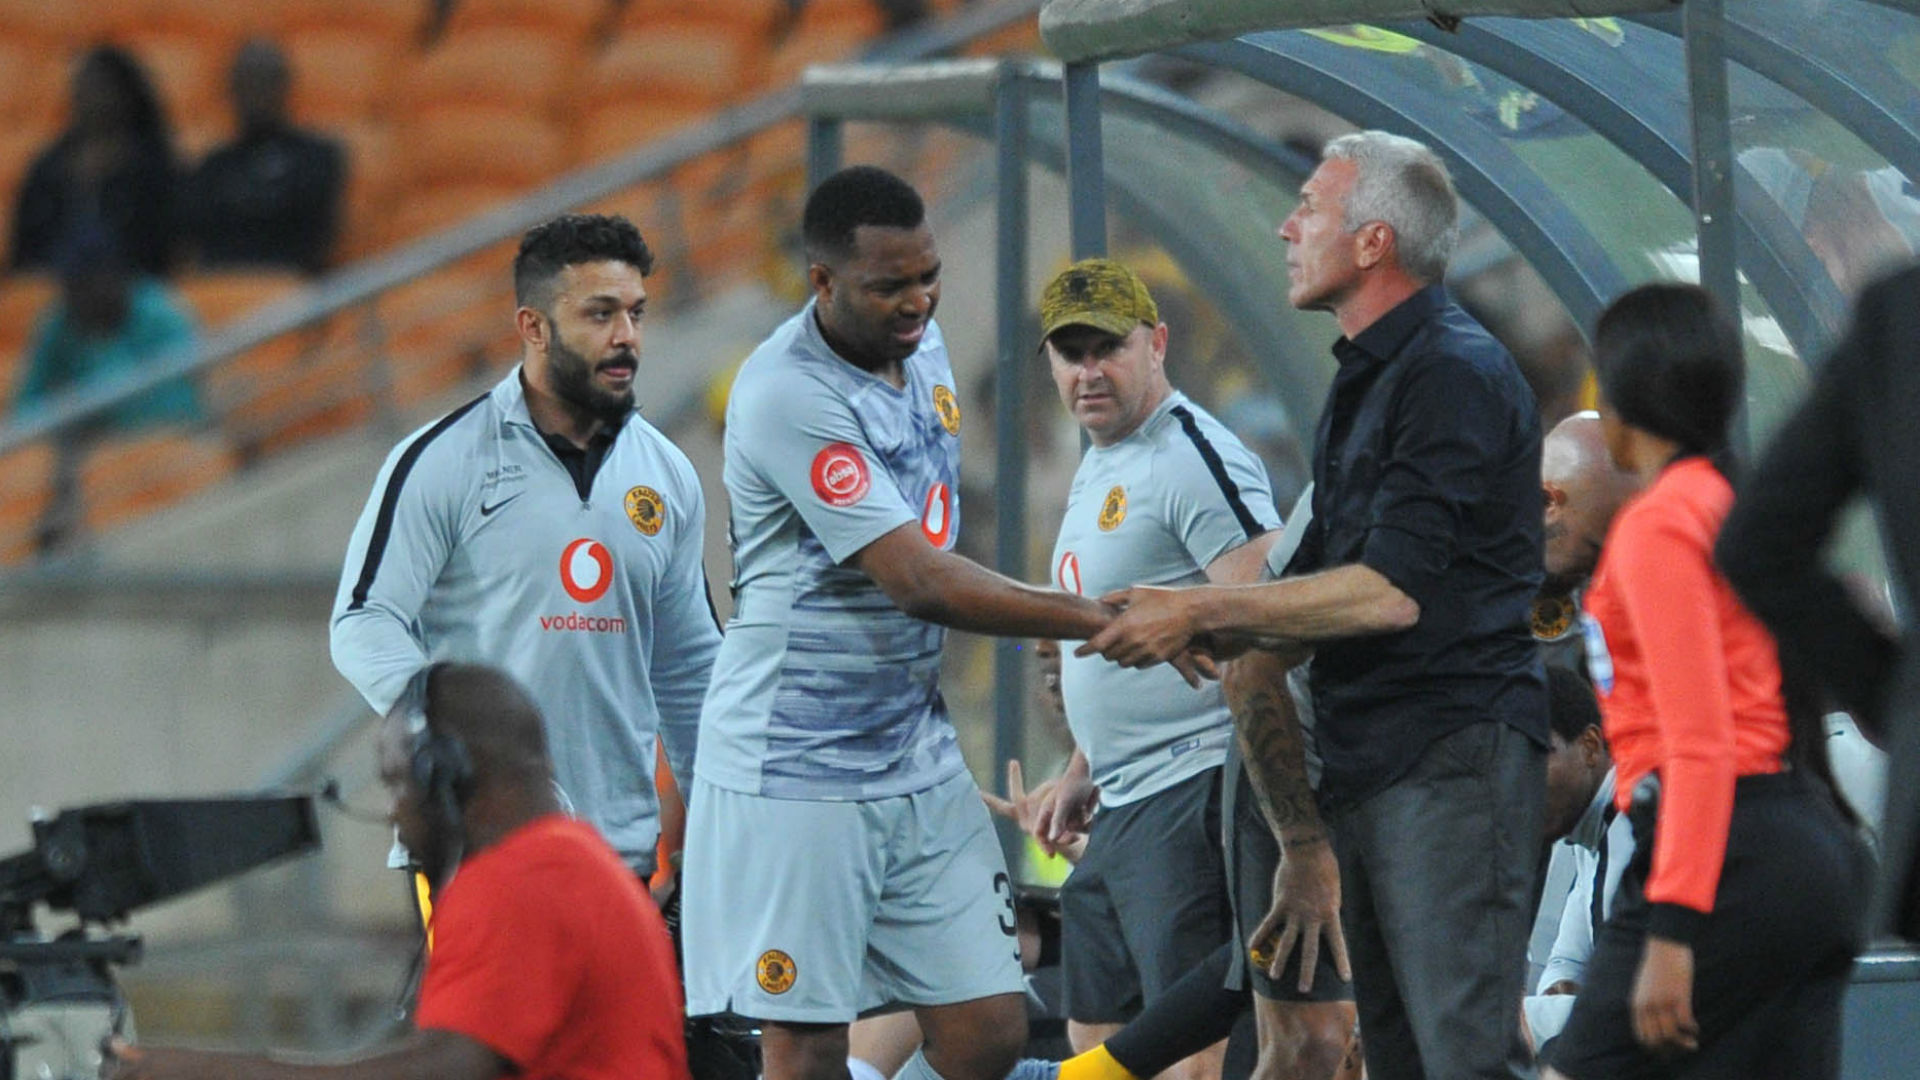 ​Kaizer Chiefs goalkeeper Khune ruled out of Cape Town City & Sundowns matches with groin injury